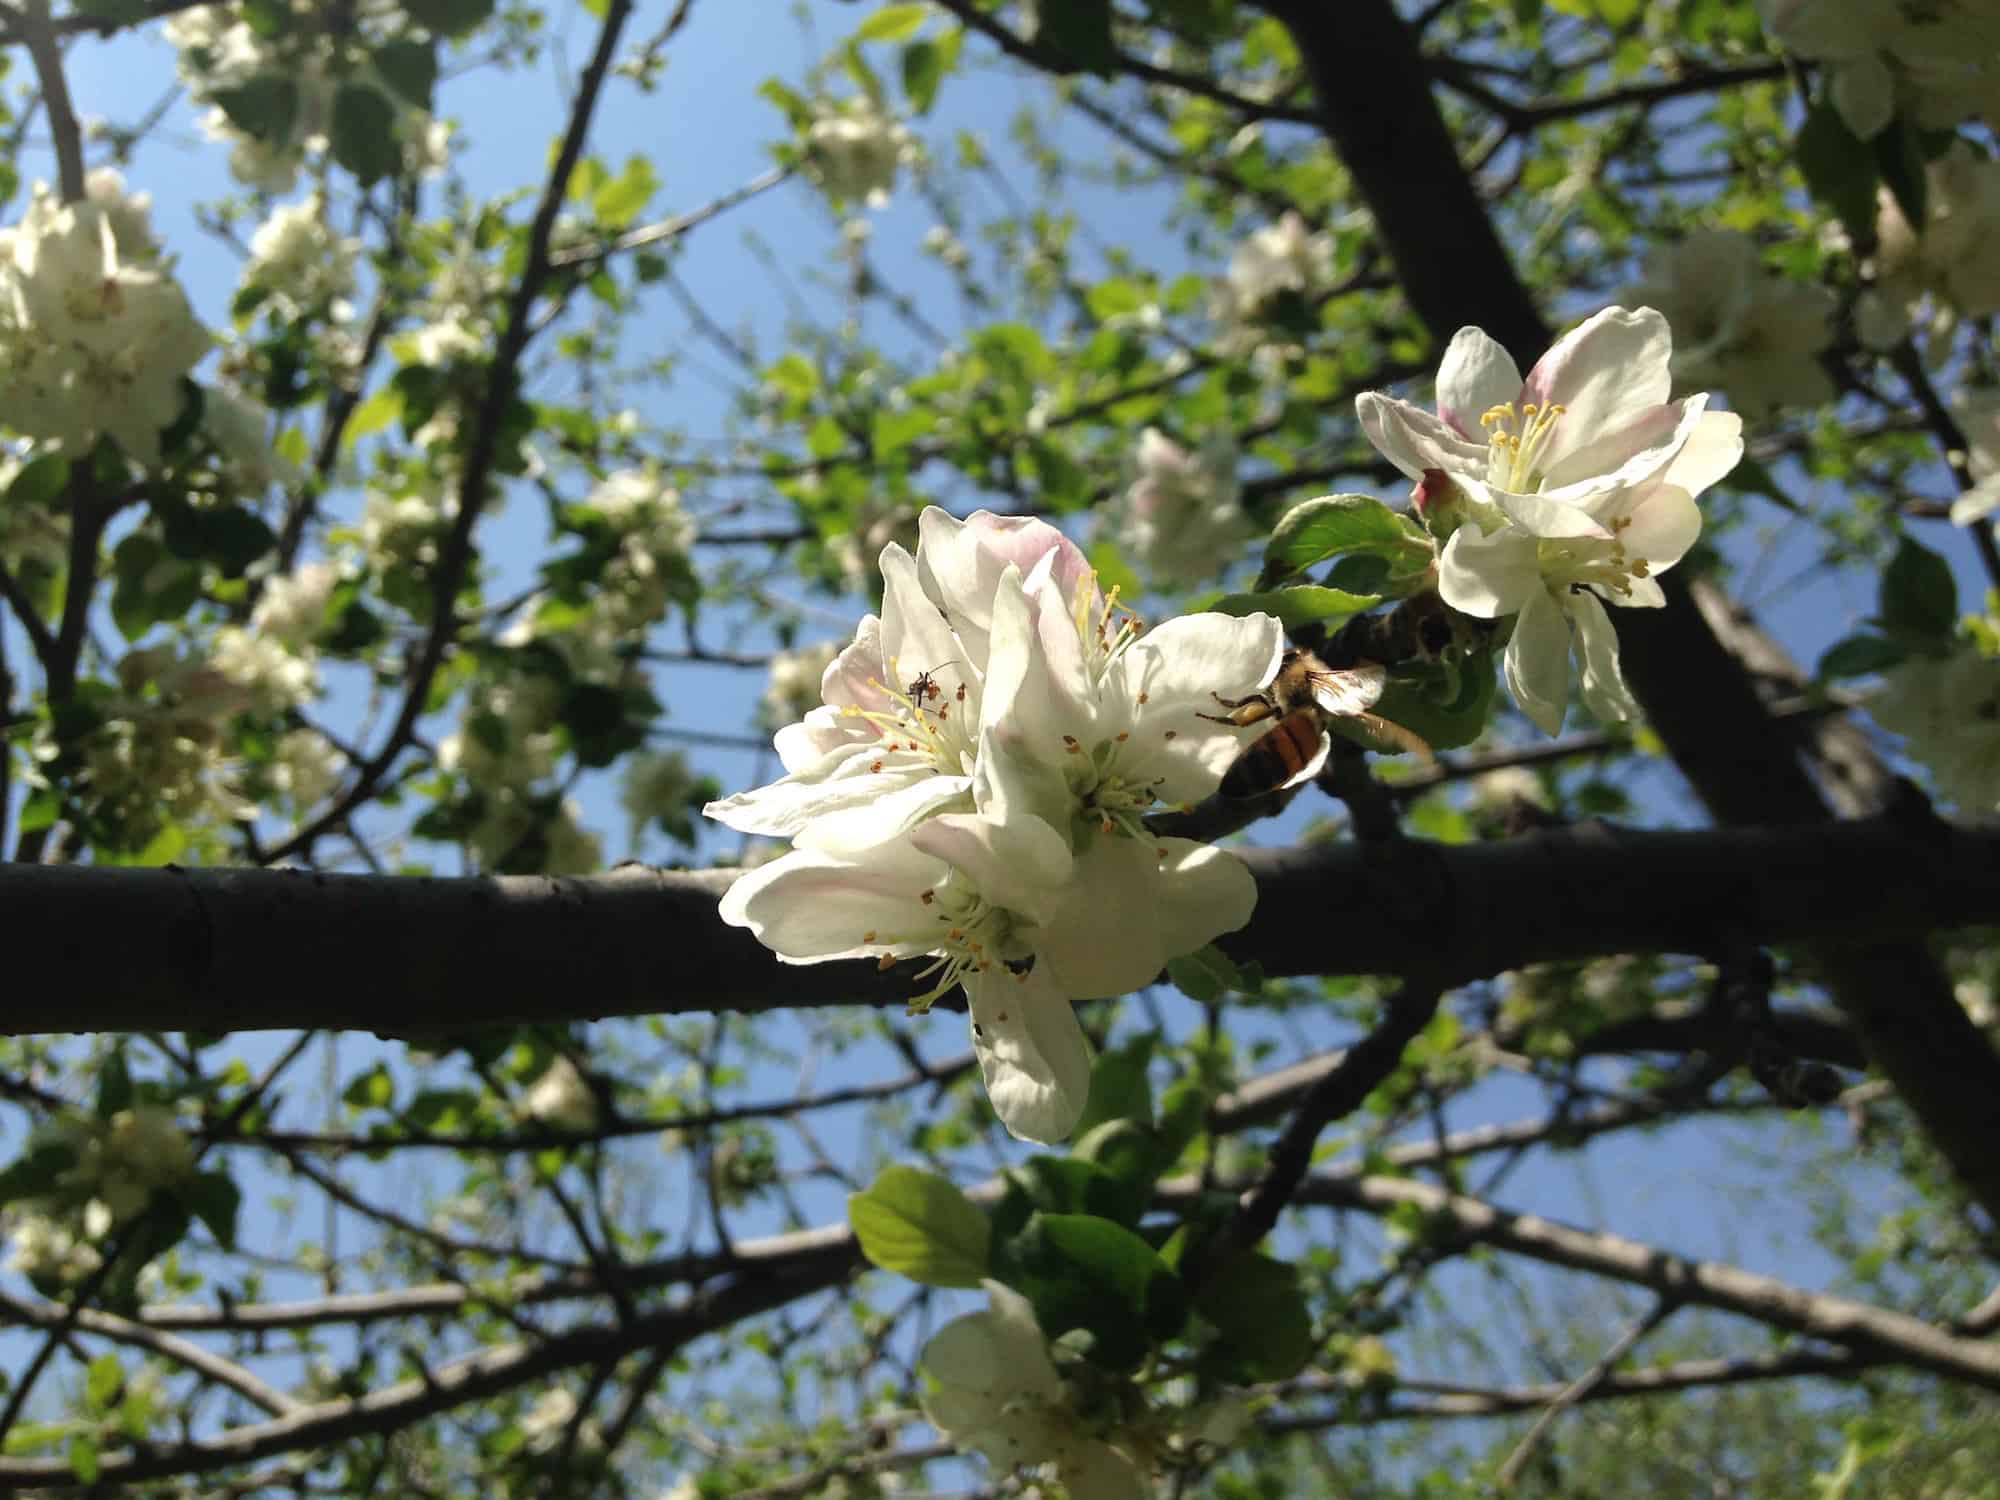 bloom-white-flowers-with-bee-at-eves-cidery